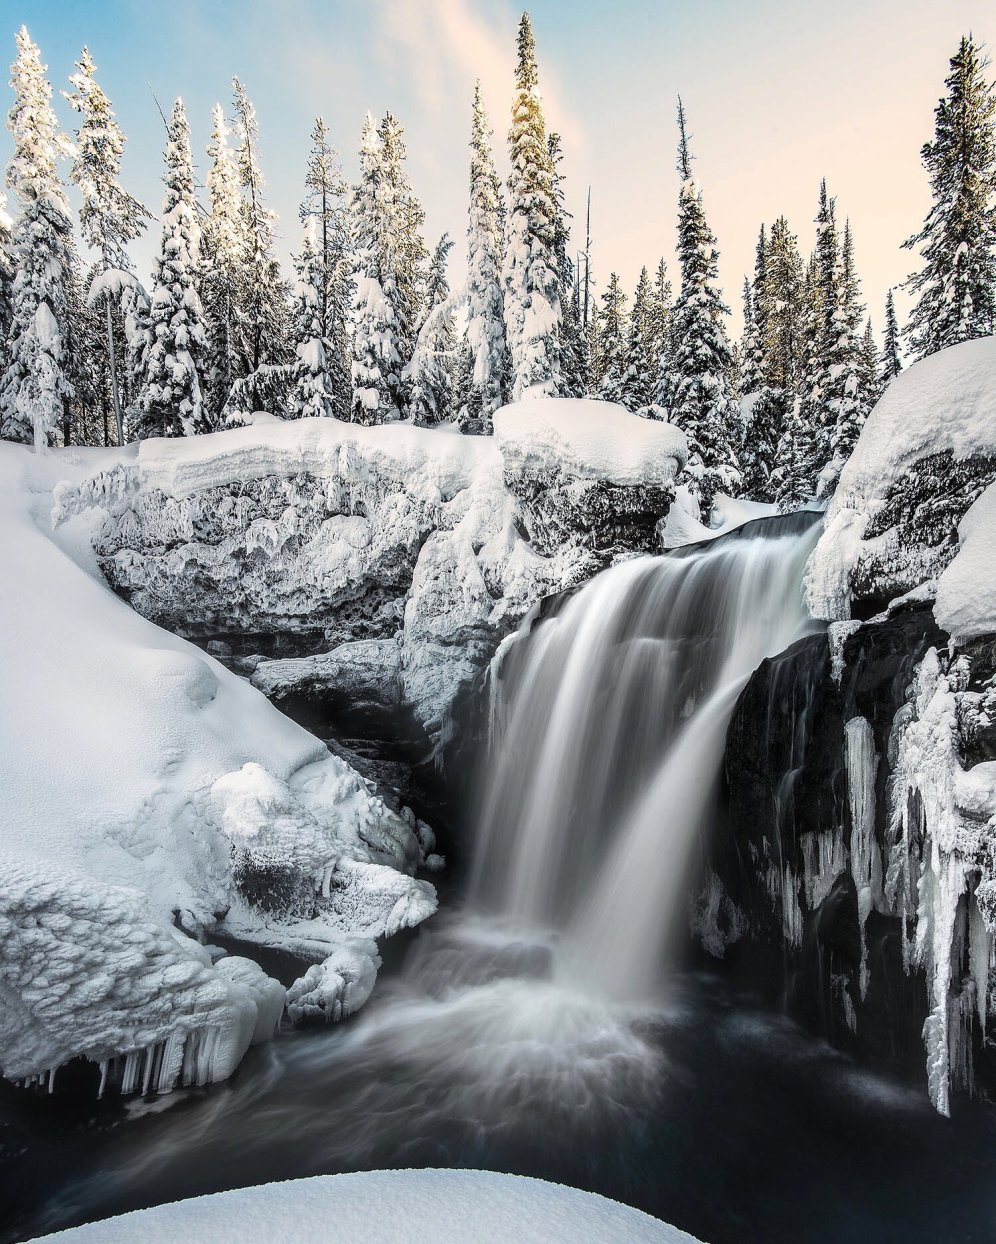 Yellowstone National Park's Moose Falls. Photo by Josh Packer. Tweeted by the US Department of the Interior, 2/21/17.